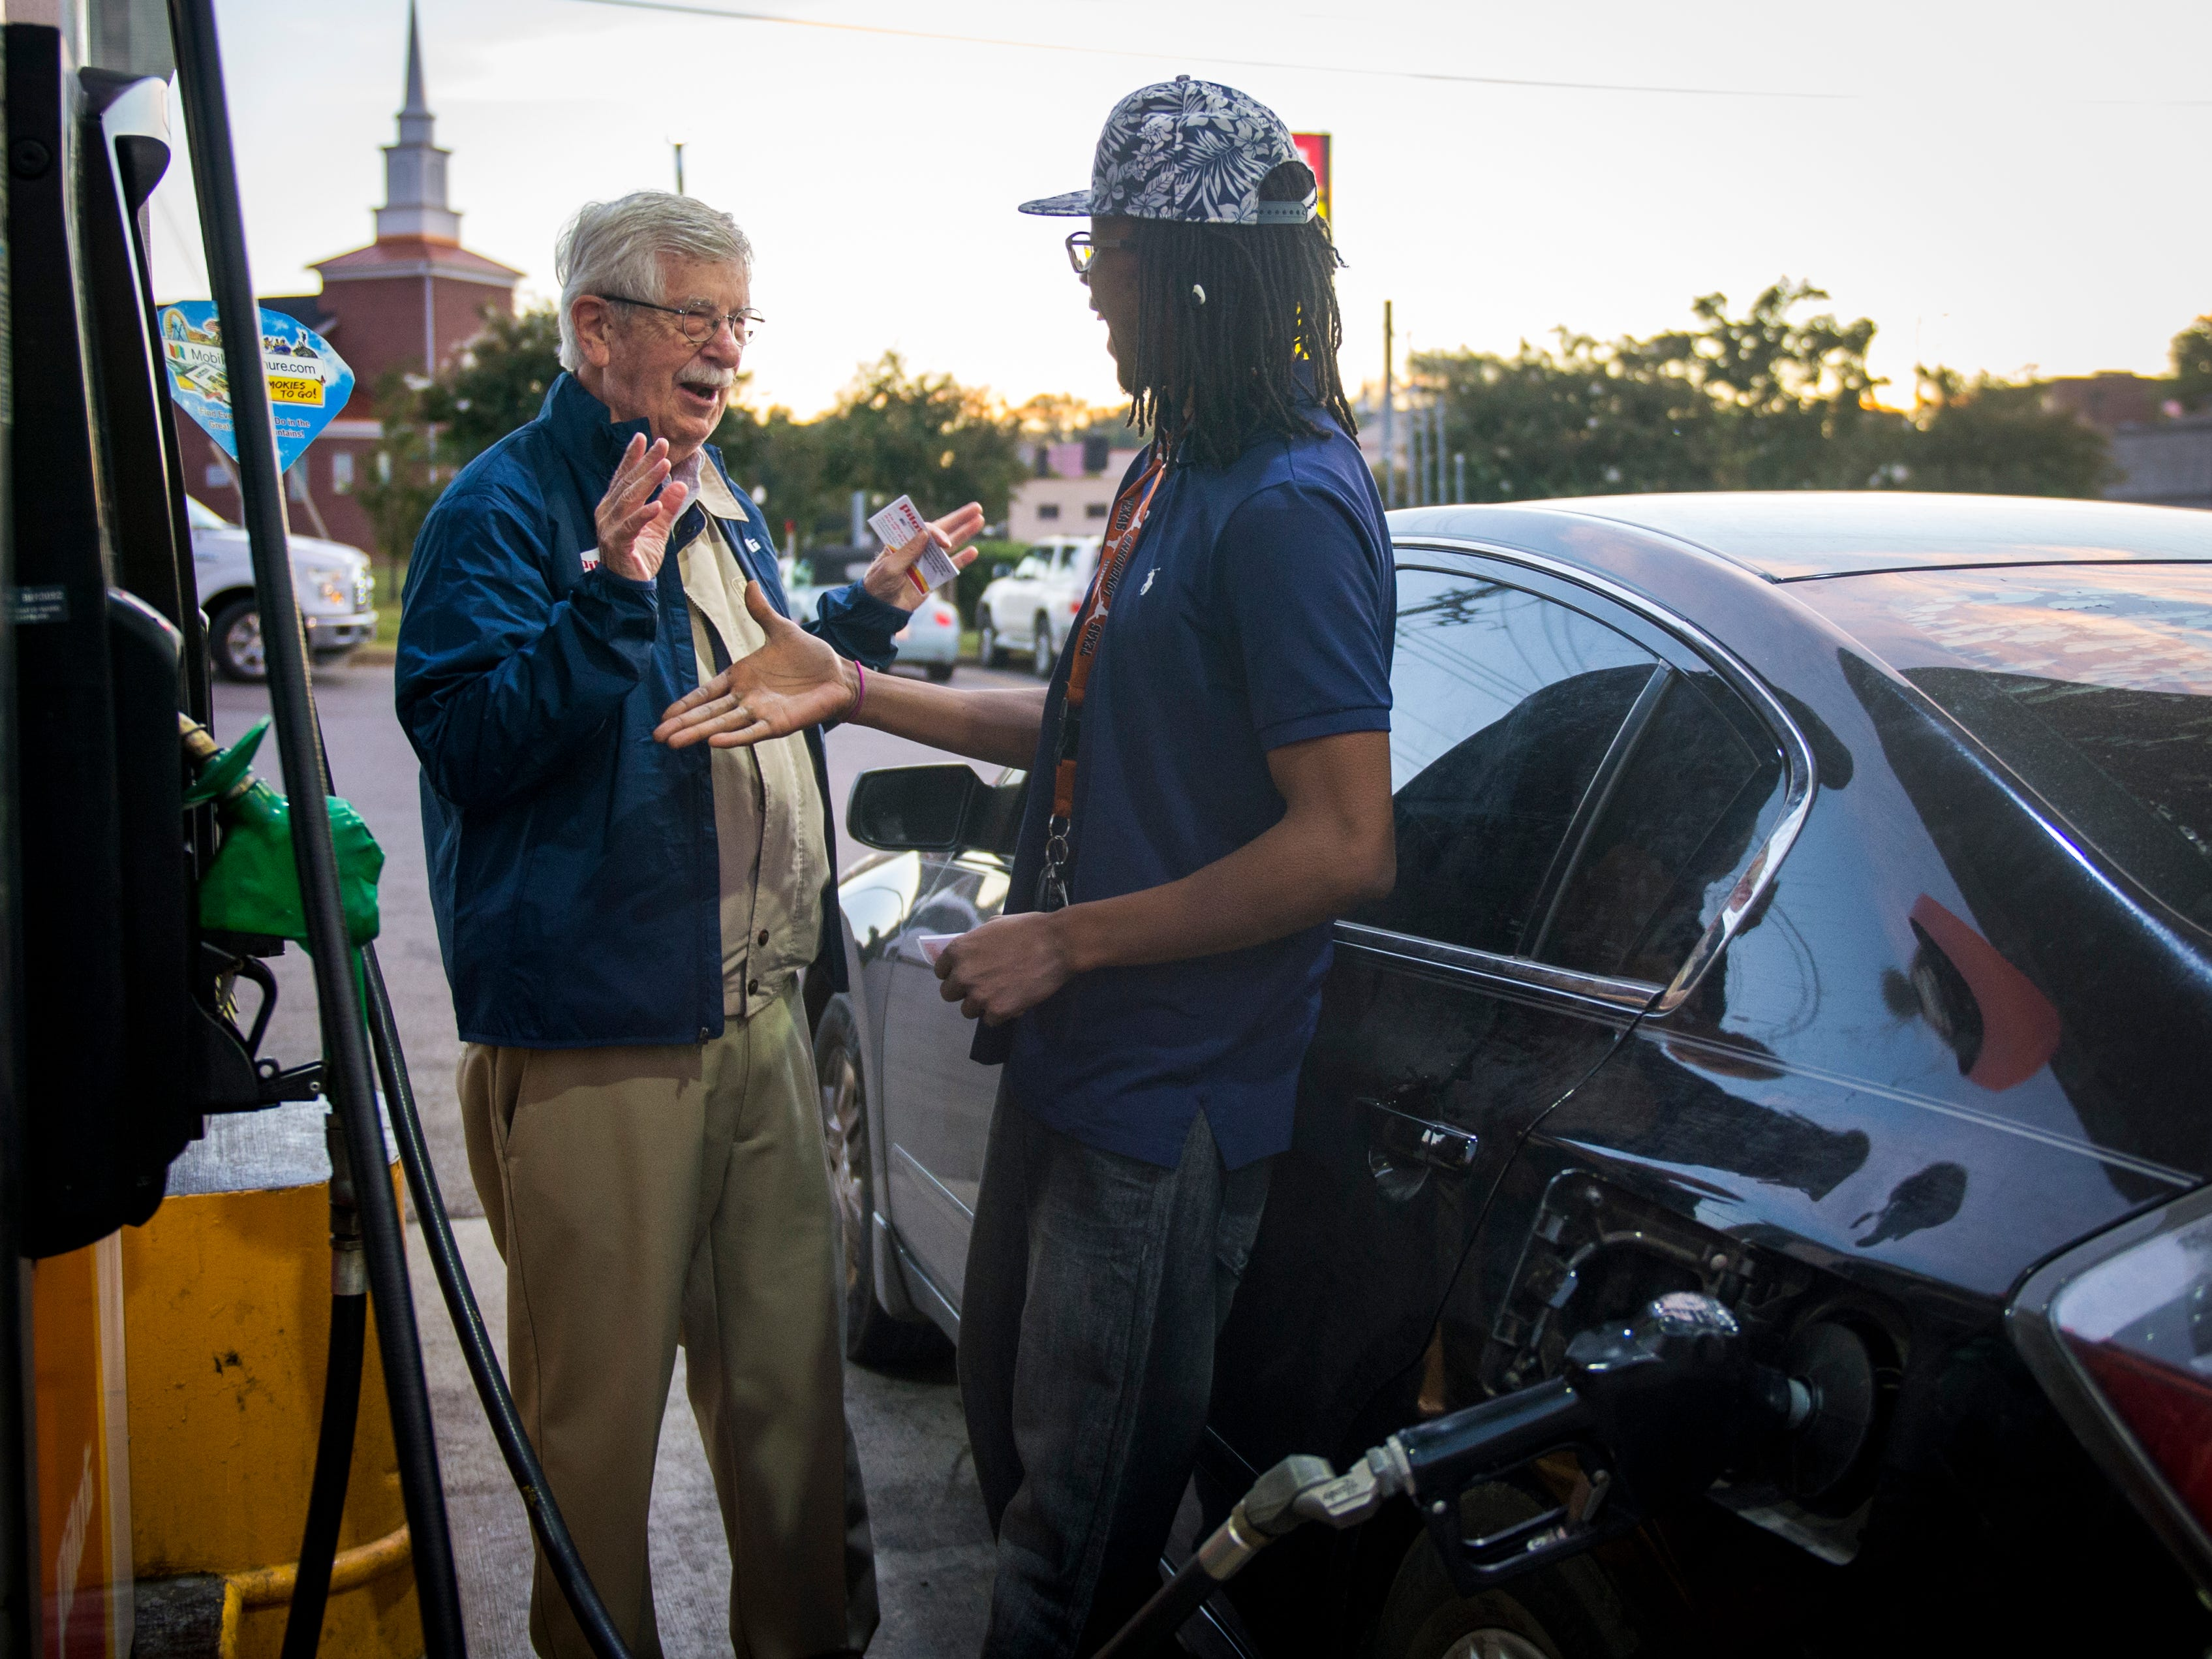 """""""You do the cartoons in the paper!"""" exclaims Trey Blevins, right, as Knoxville News Sentinel editorial cartoonist Charlie Daniel introduces himself and hands out free drink coupons and pumps gas at the Pilot gas station on Western Avenue on Oct. 2, 2017. Daniel was part of Pilot Celebrity Pumpers, in which Knoxville celebrities help pump gas in support of Pilot's fundraising efforts for the United Way."""